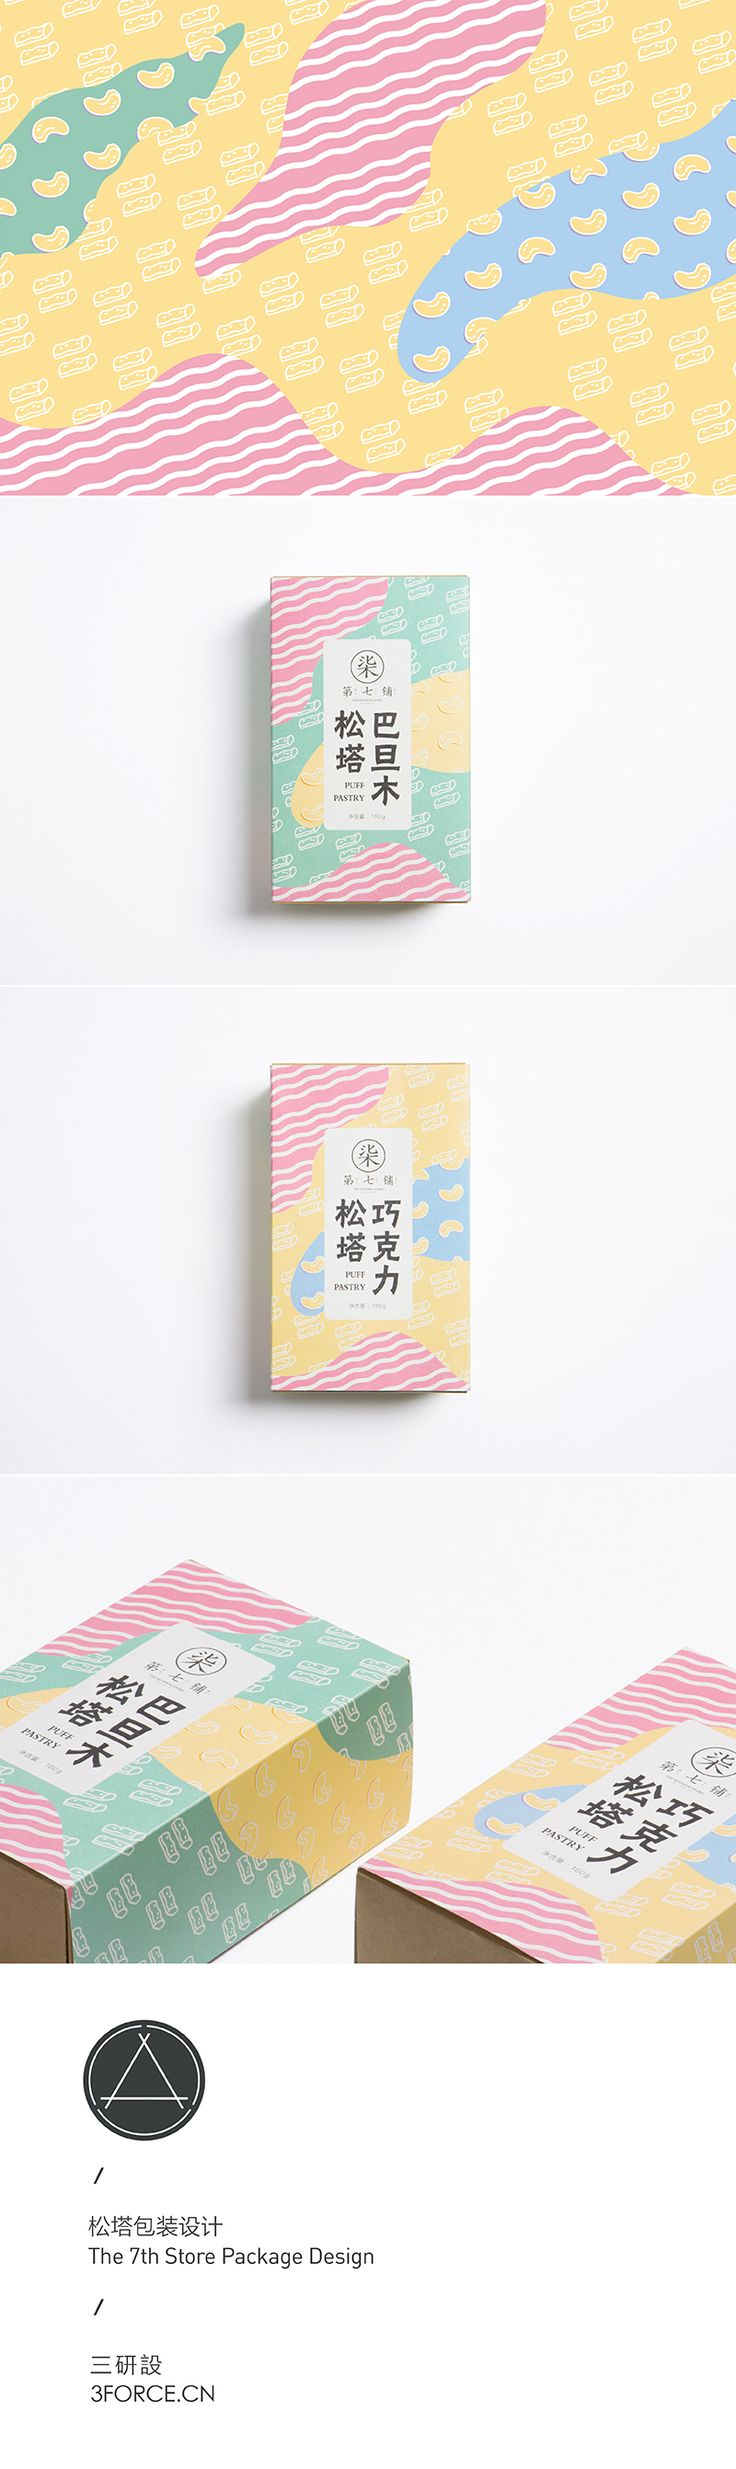 The 7th Store Puff Pastry / 第七鋪松塔包裝設計 on Behance